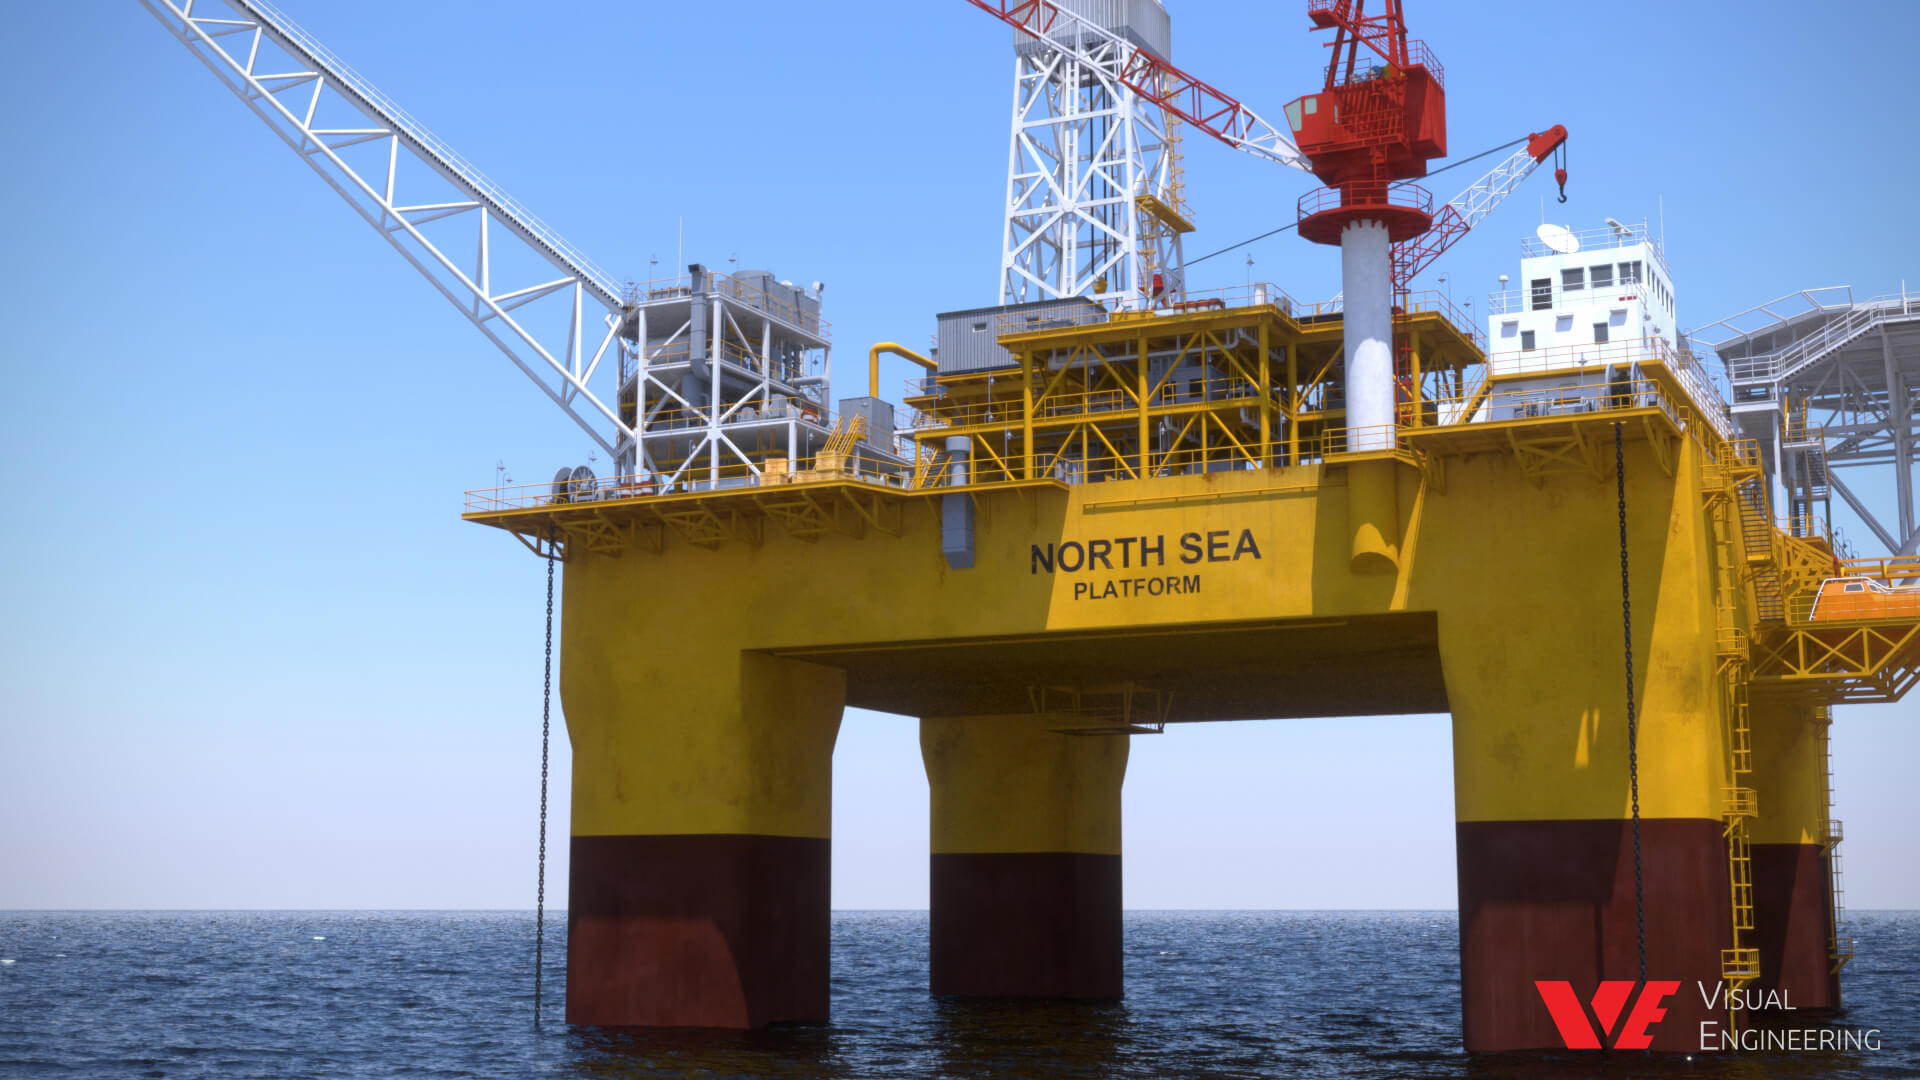 VE-Home-OurWorks-Oilrig_2-1920px-001 Our Work